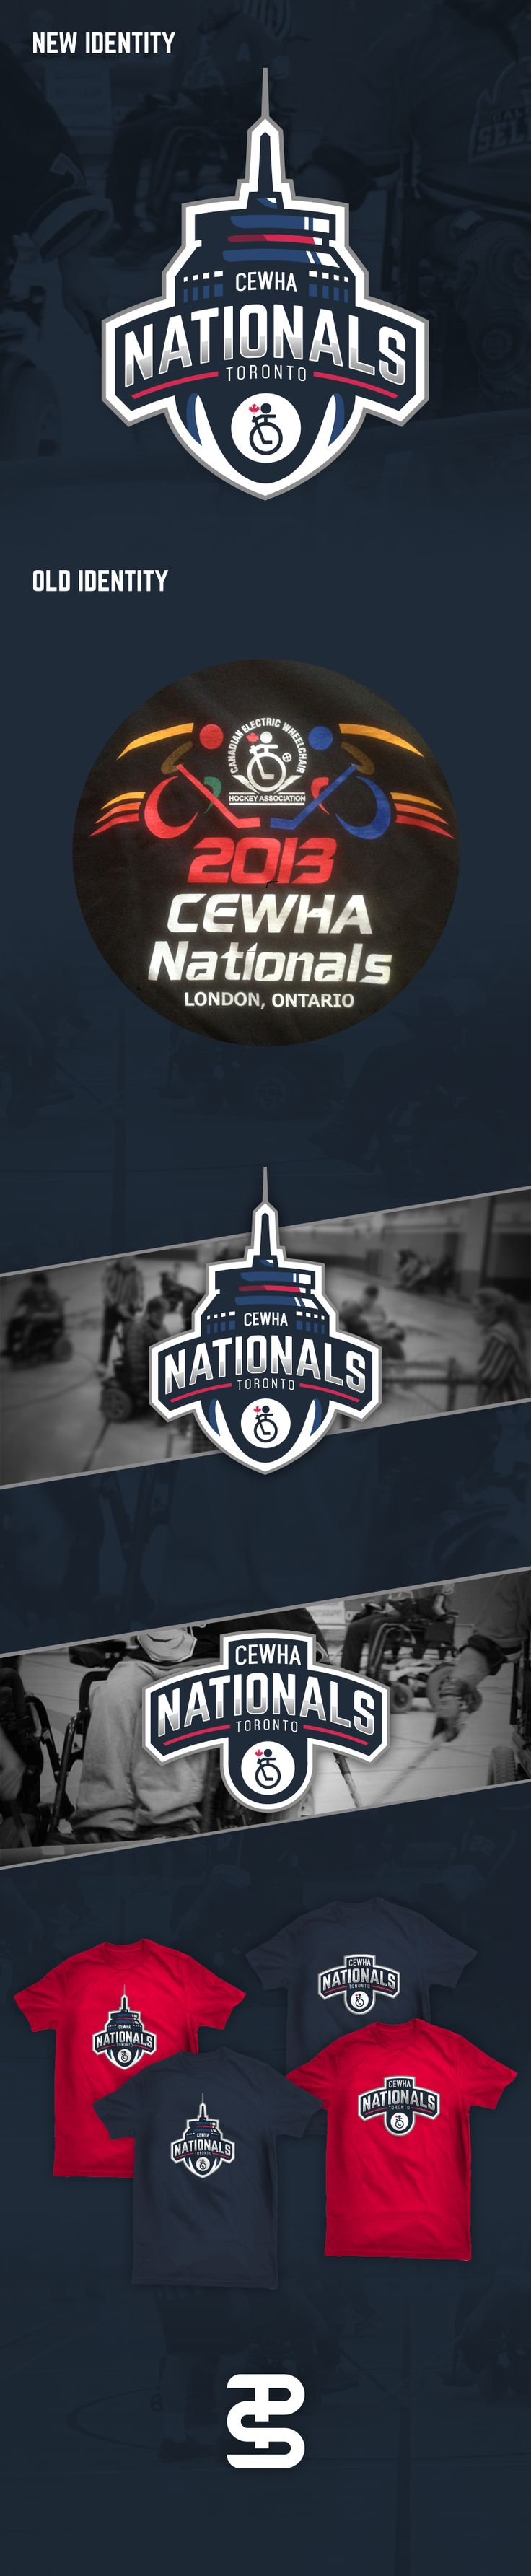 CEWHA 2014 Nationals Identity on BehanceCrocodile - American Logo Sport Theme